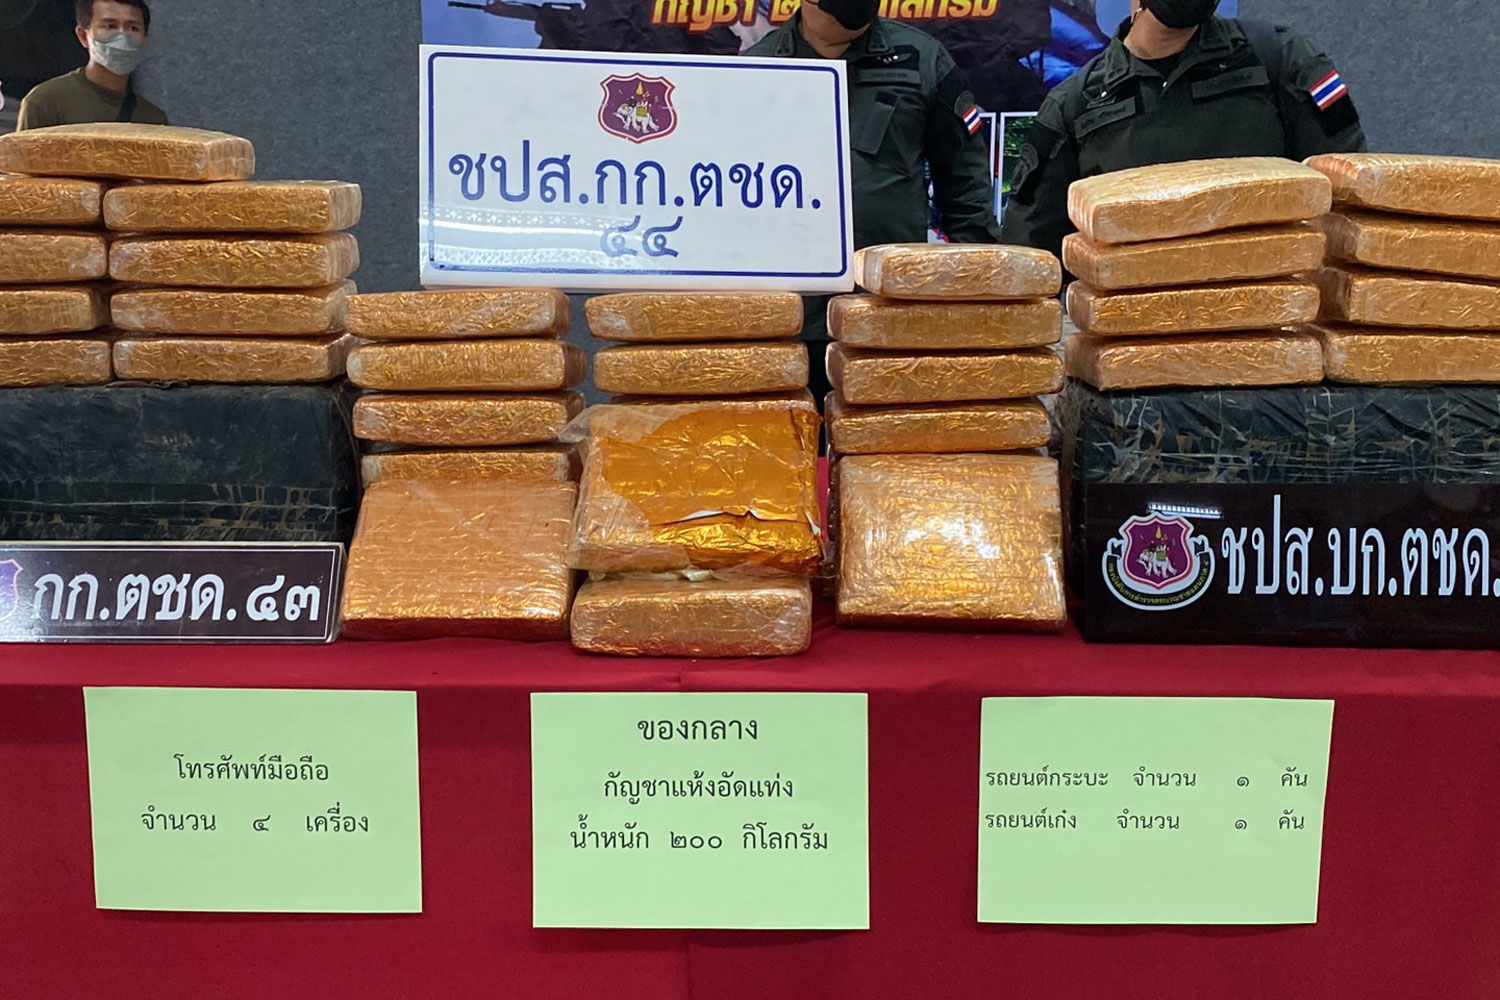 Packs of compressed marijuana, weighing 200kg, are displayed during a media briefing in Hat Yai, Songkhla, on Thursday. (Photo: Assawin Pakkawan)